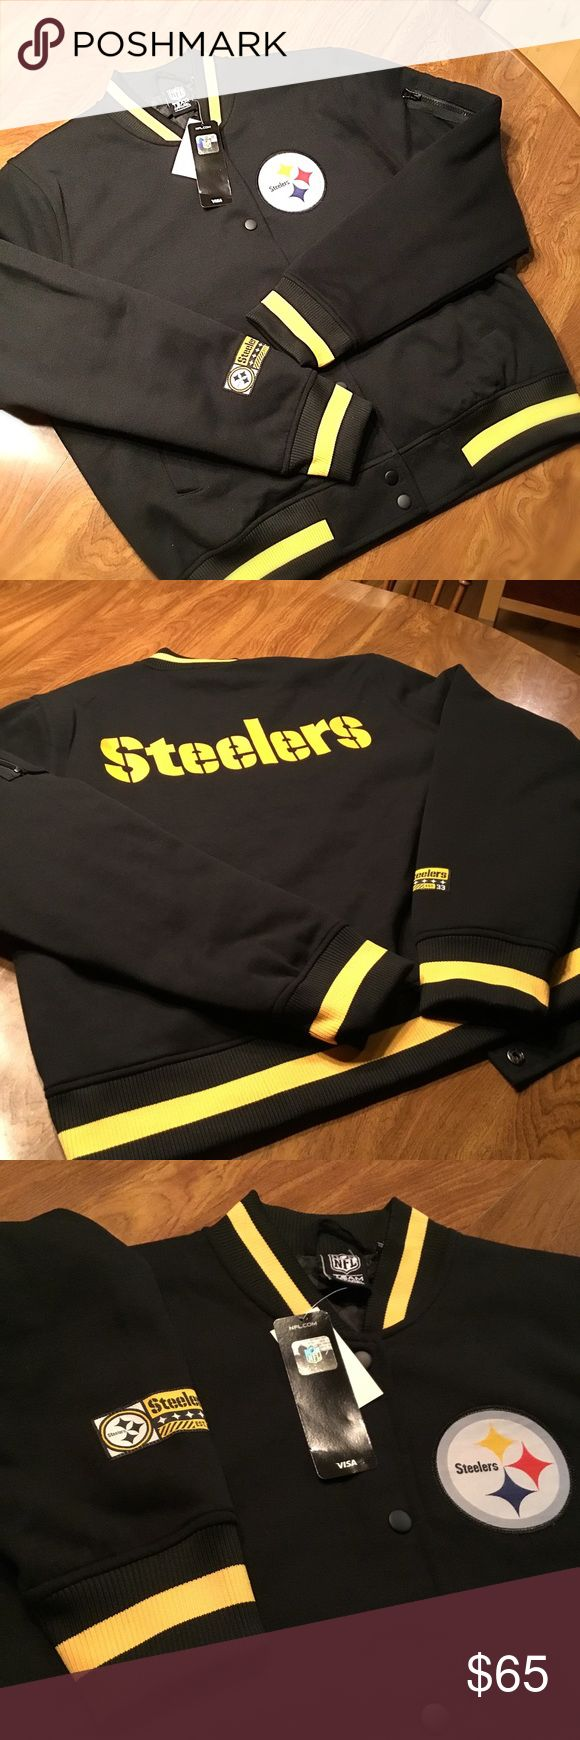 Pittsburgh Steelers NFL apparel jacket NFL licensed team apparel jacket. Snap closure, quilted liner. Two front pockets, arm pocket, and one interior pocket. Banded waist, collar, and sleeves. Large also available under separate listing. Price is firm. Jackets & Coats